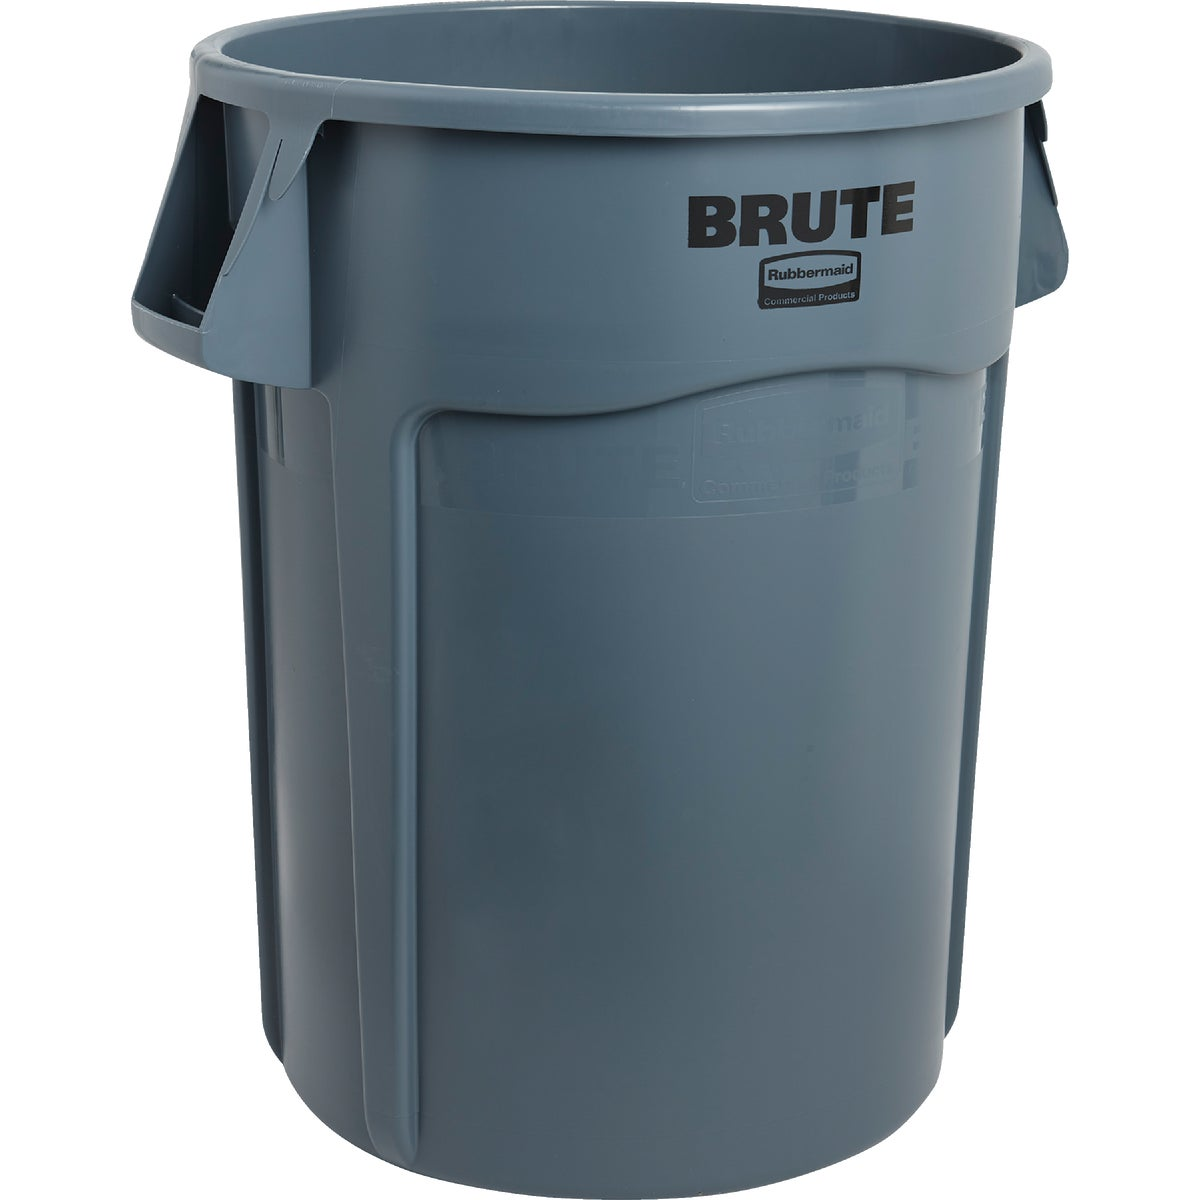 44GAL PLASTIC TRASH CAN - FG264300GRAY by Rubbermaid Comm Prod